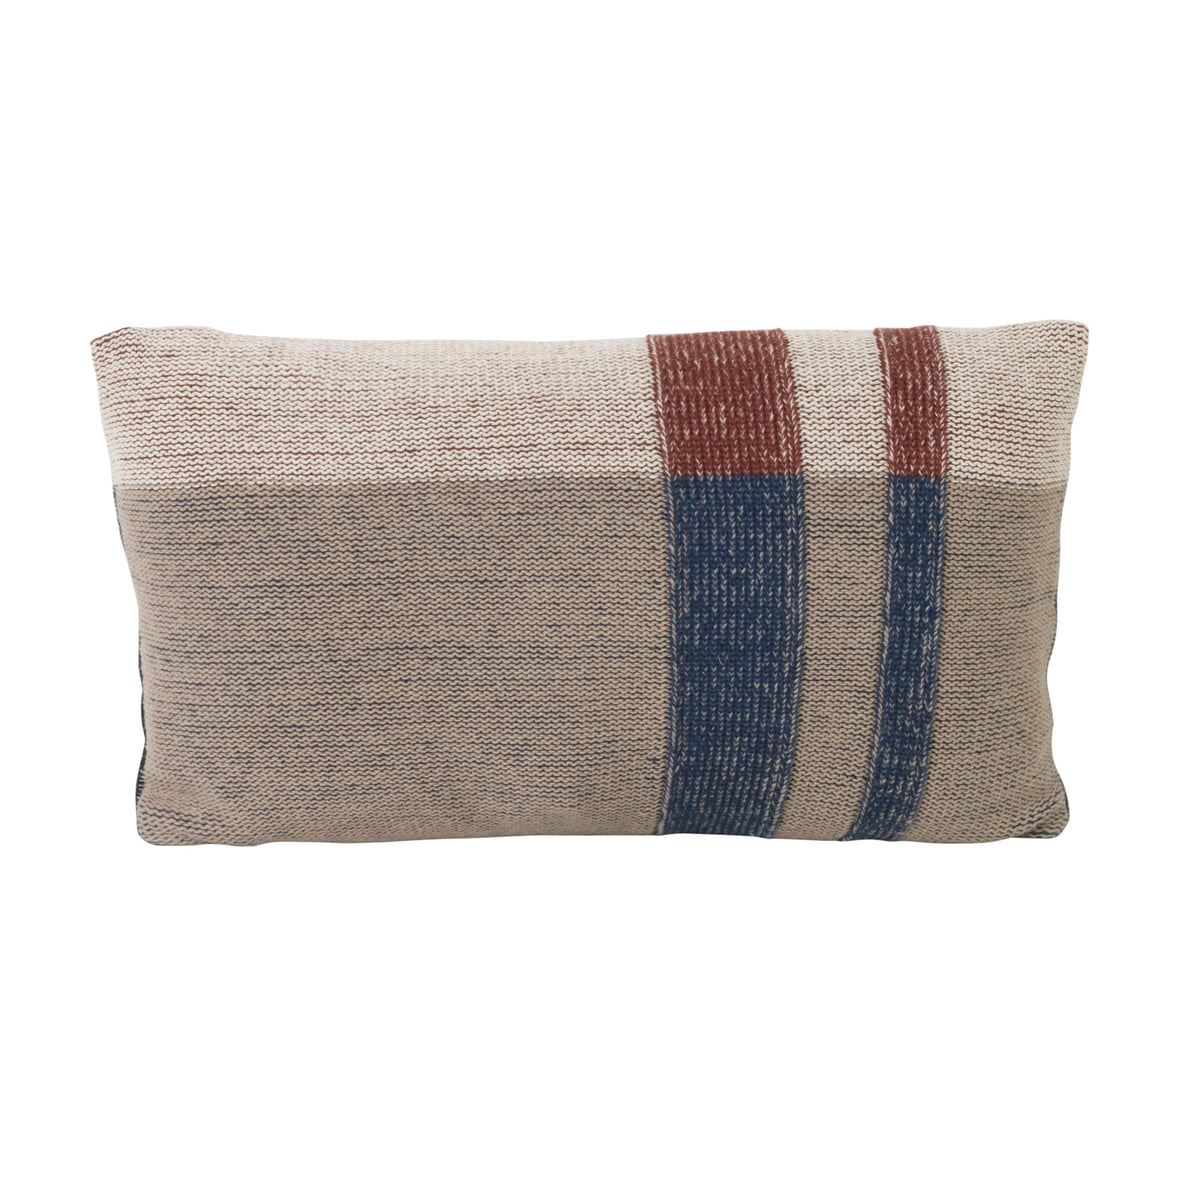 medley knit cushion by ferm living connox. Black Bedroom Furniture Sets. Home Design Ideas